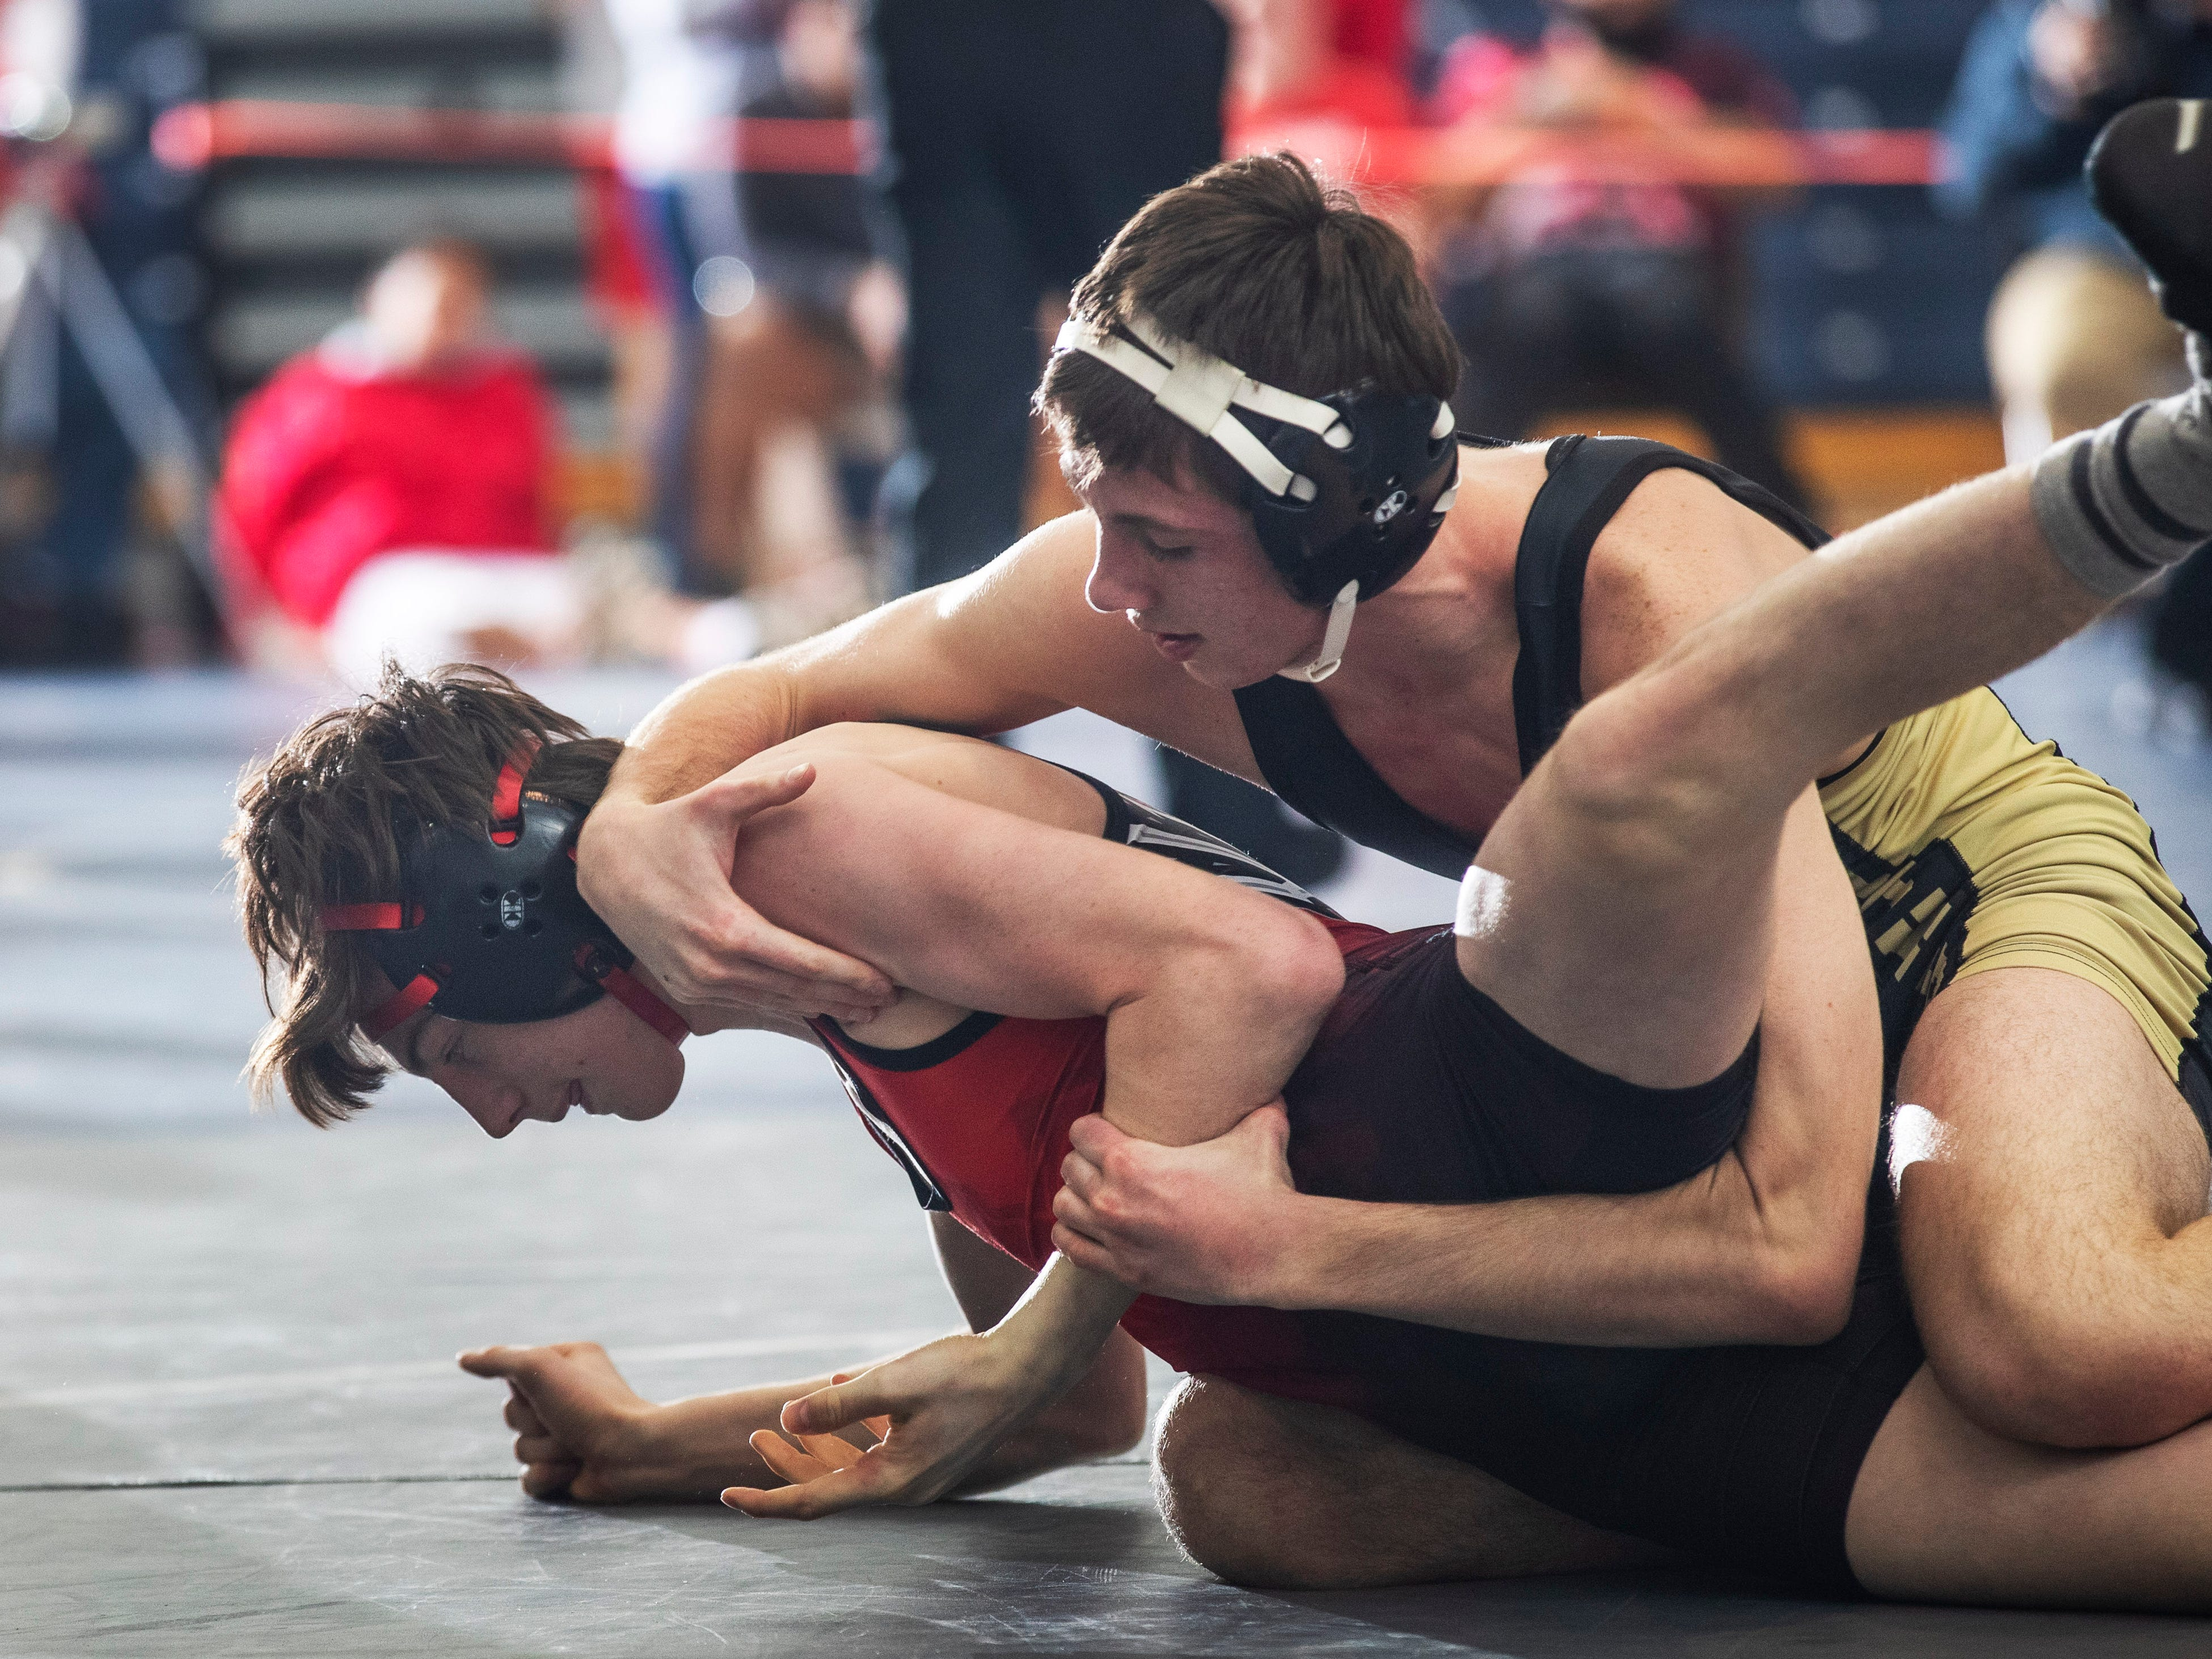 Southern's Robert Woodcock defeated Huntedon Central's Anthony Romaniello 11-5 in their 138 lbs. bout.  Southern Regional vs Hunterdon Central in NJSIAA Team Wrestling Group V Final in Toms River NJ on February 10 , 2019.